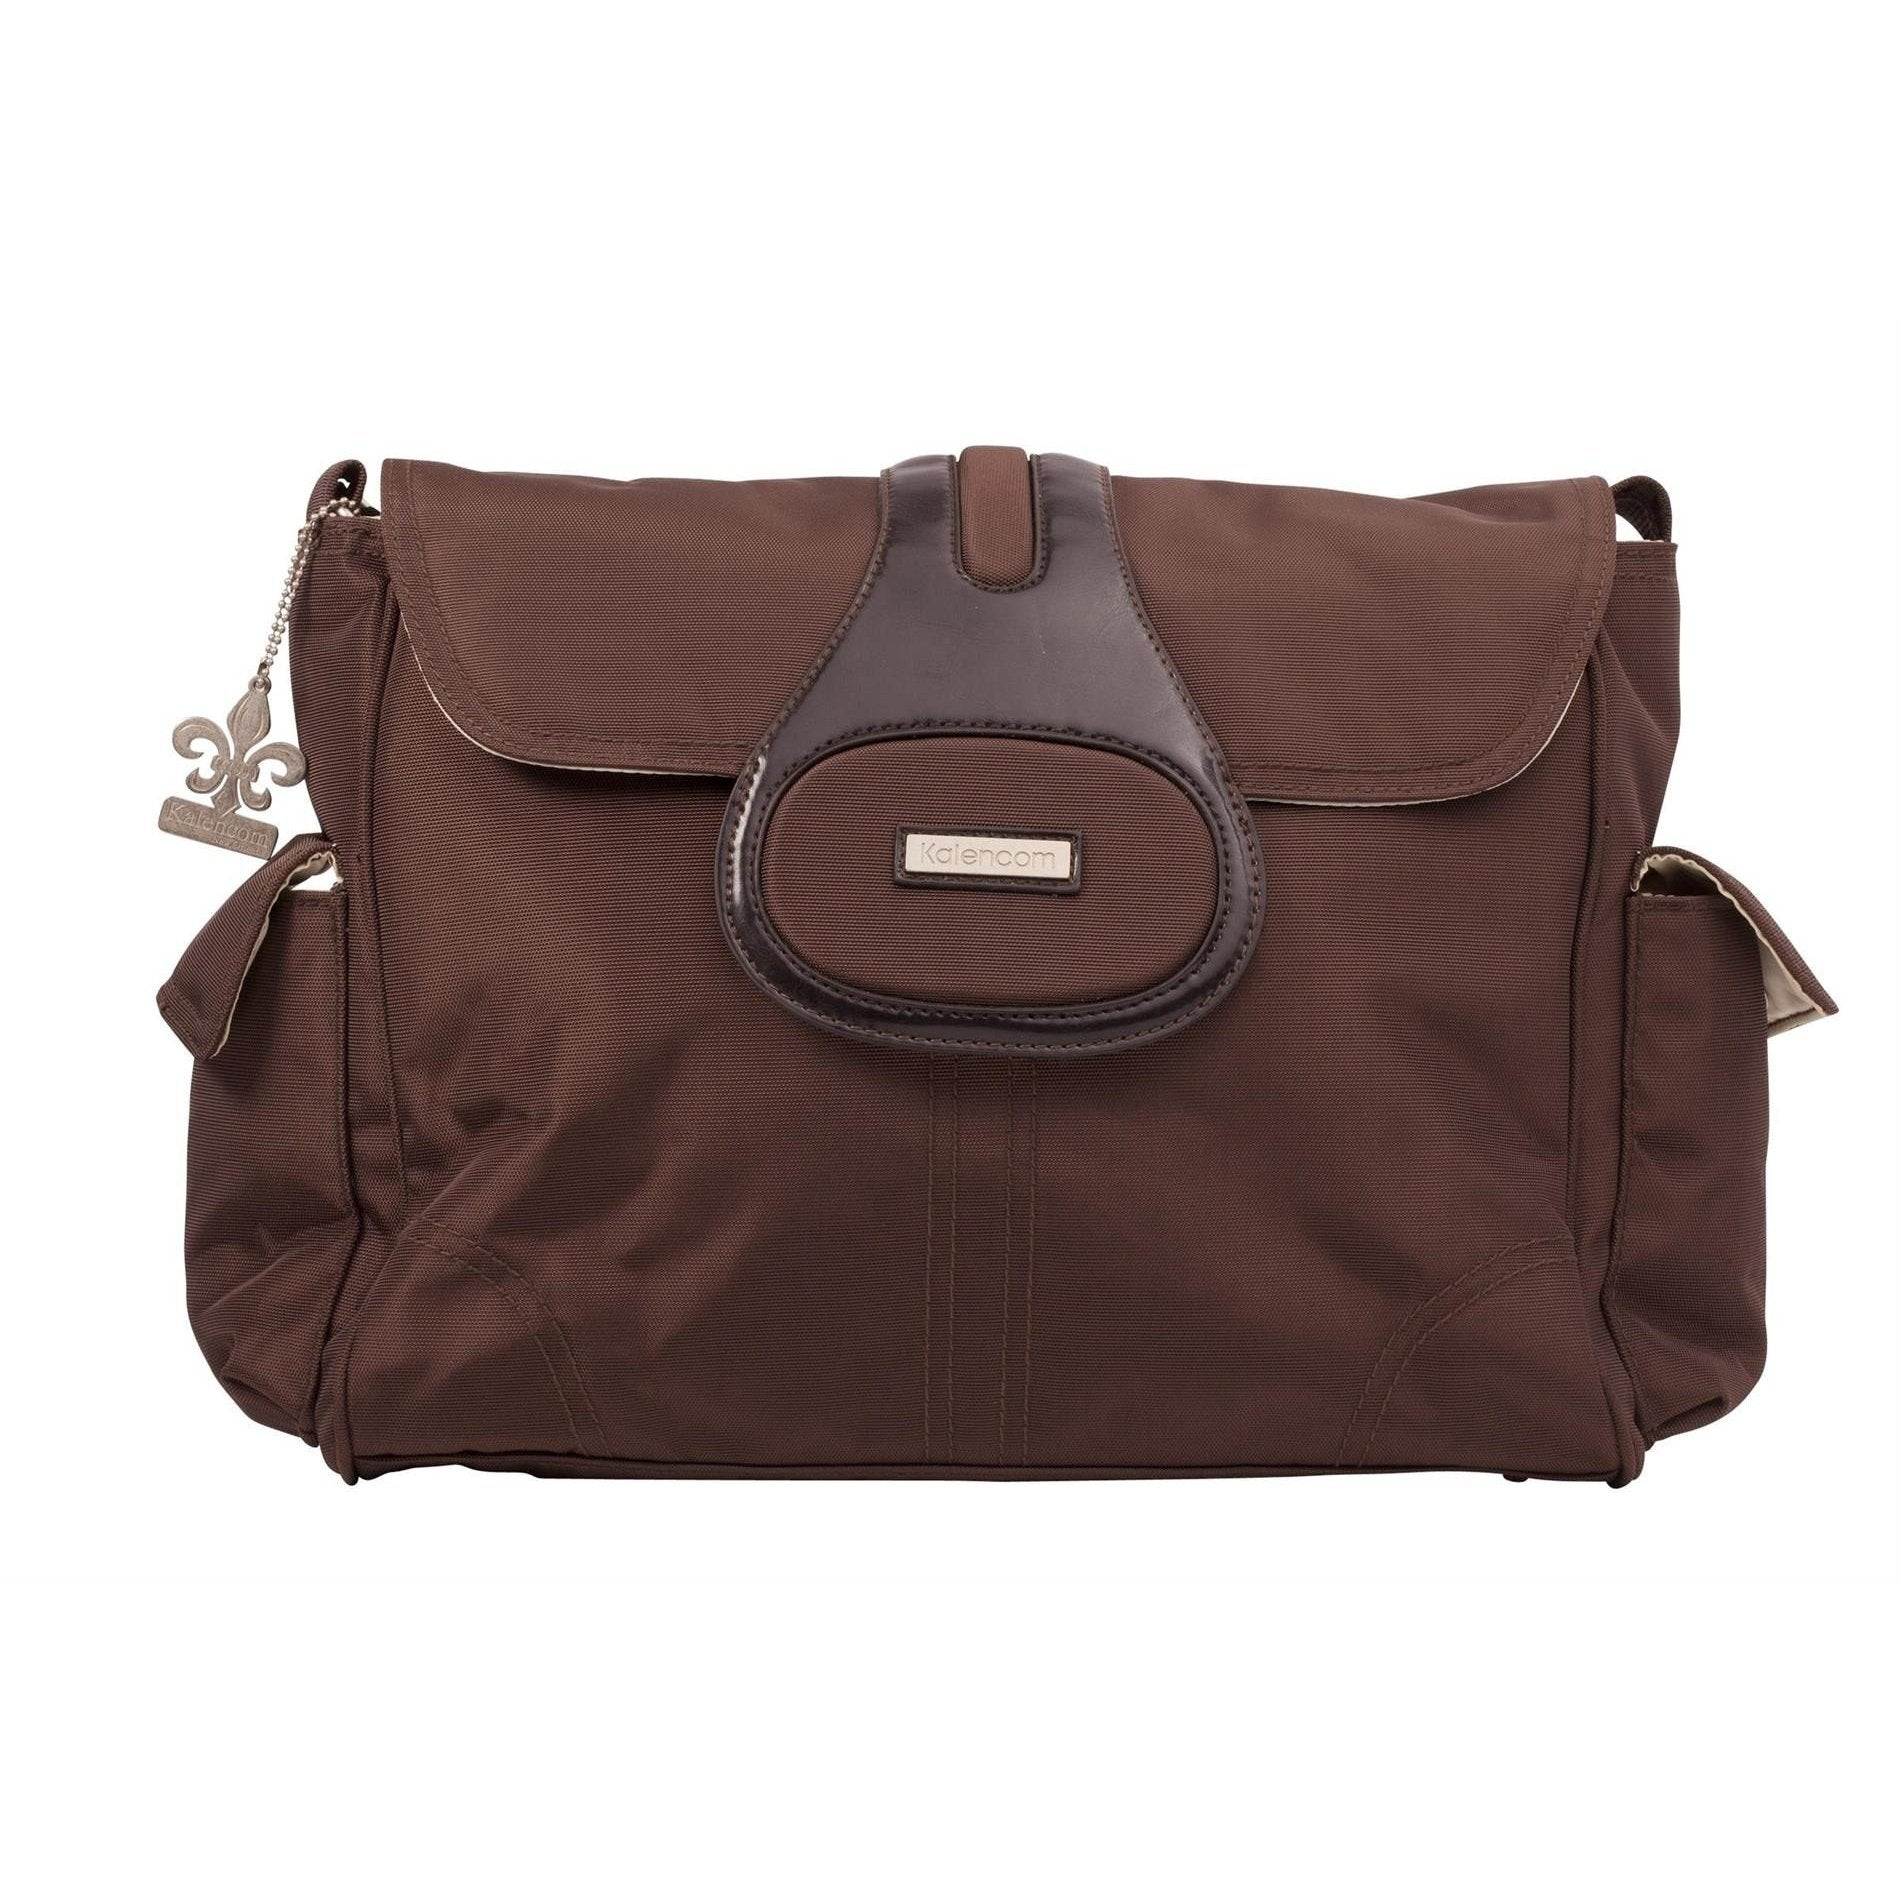 Chocolate Elite Diaper Bag-Diaper Bags-Default-Jack and Jill Boutique